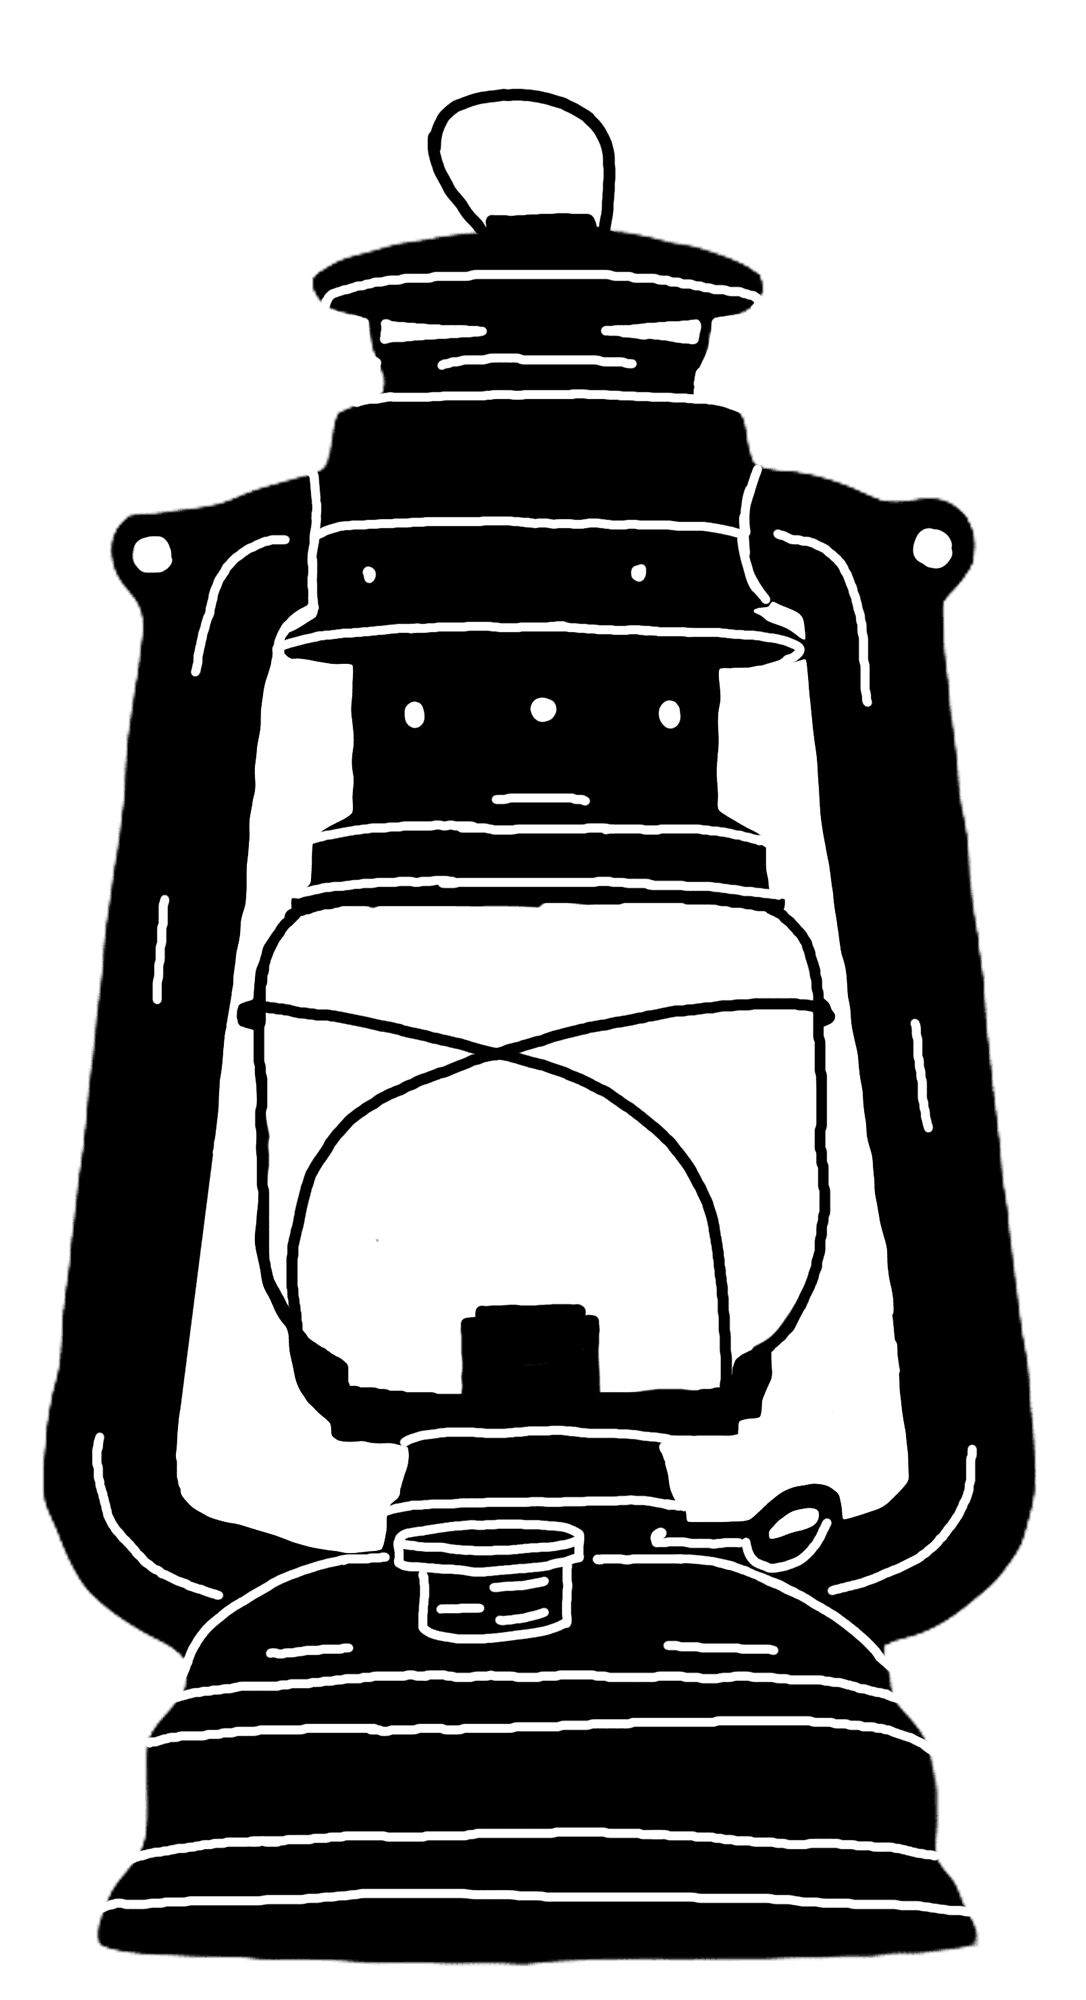 File:Feuerhand-SW.png - Wikimedia Commons for Drawing Oil Lamp  110yll